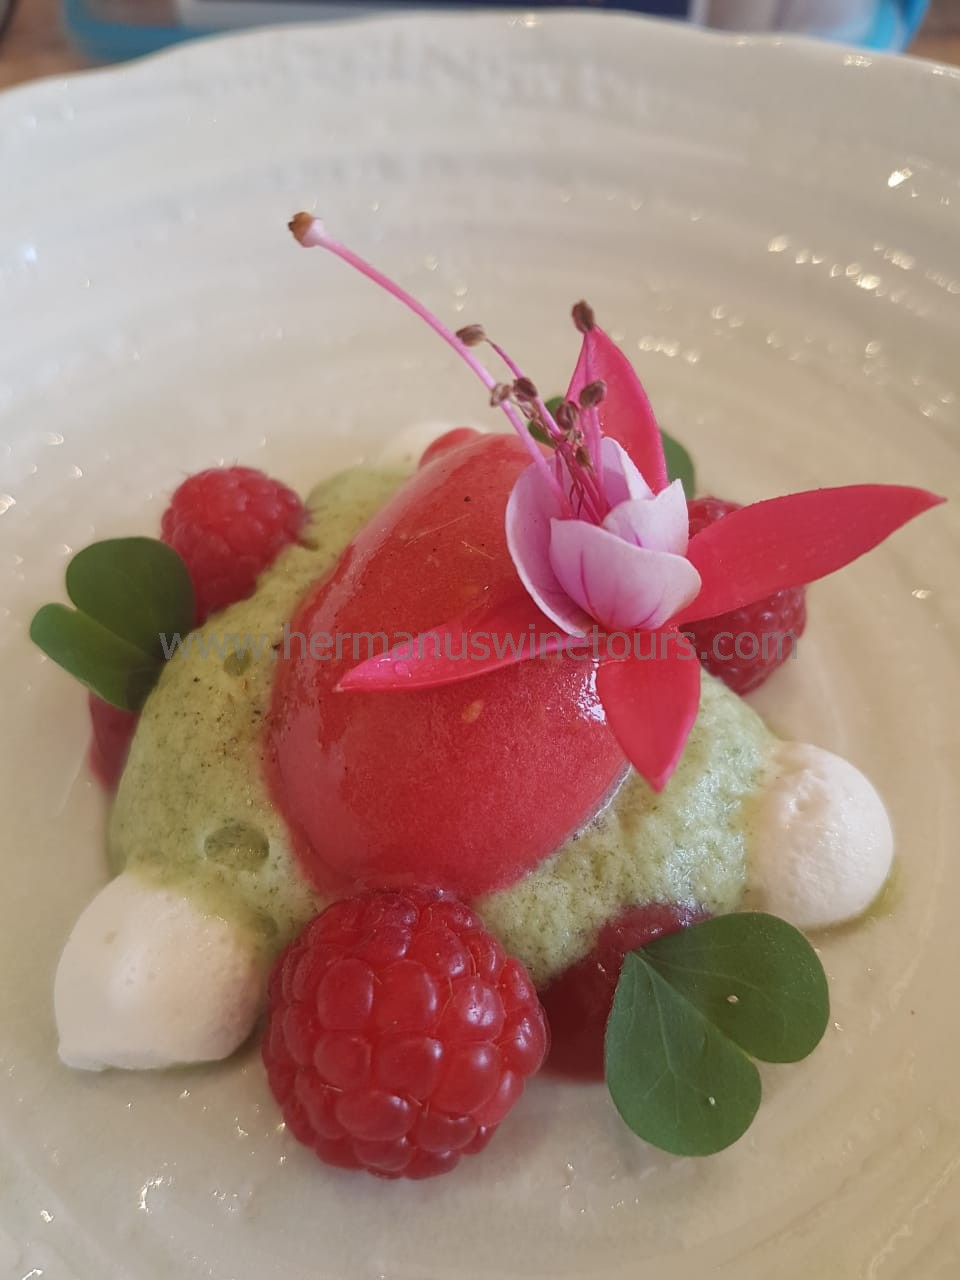 Raspberry and mint sorbet, Hermanus restaurant, South Africa